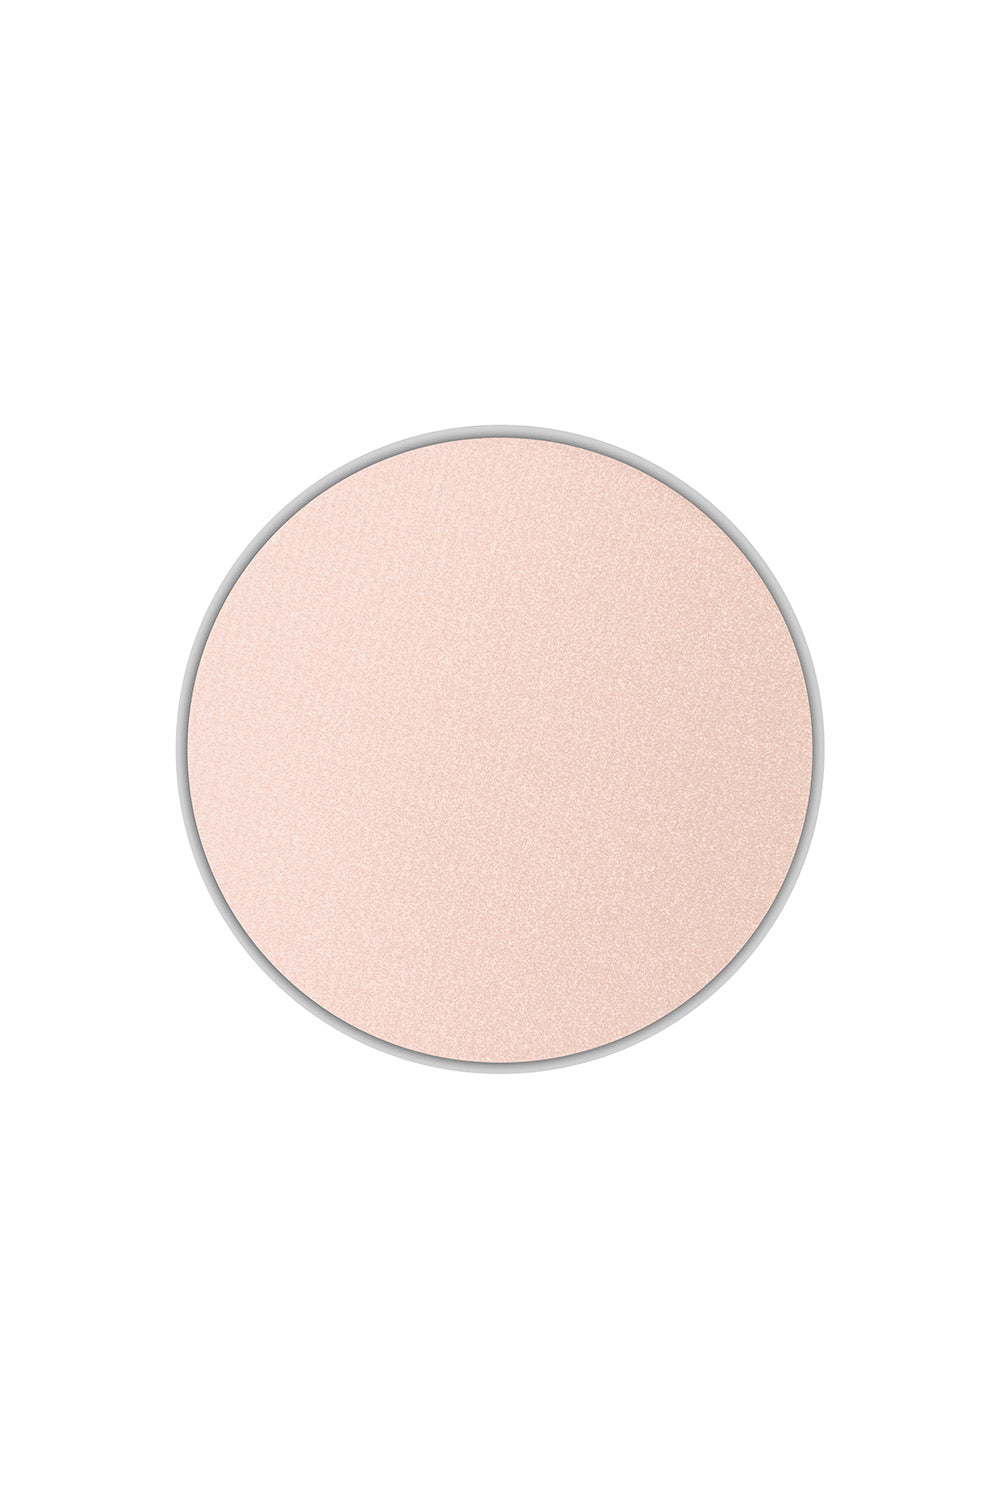 Type 1 Eyeshadow Pan - Pink Bisque